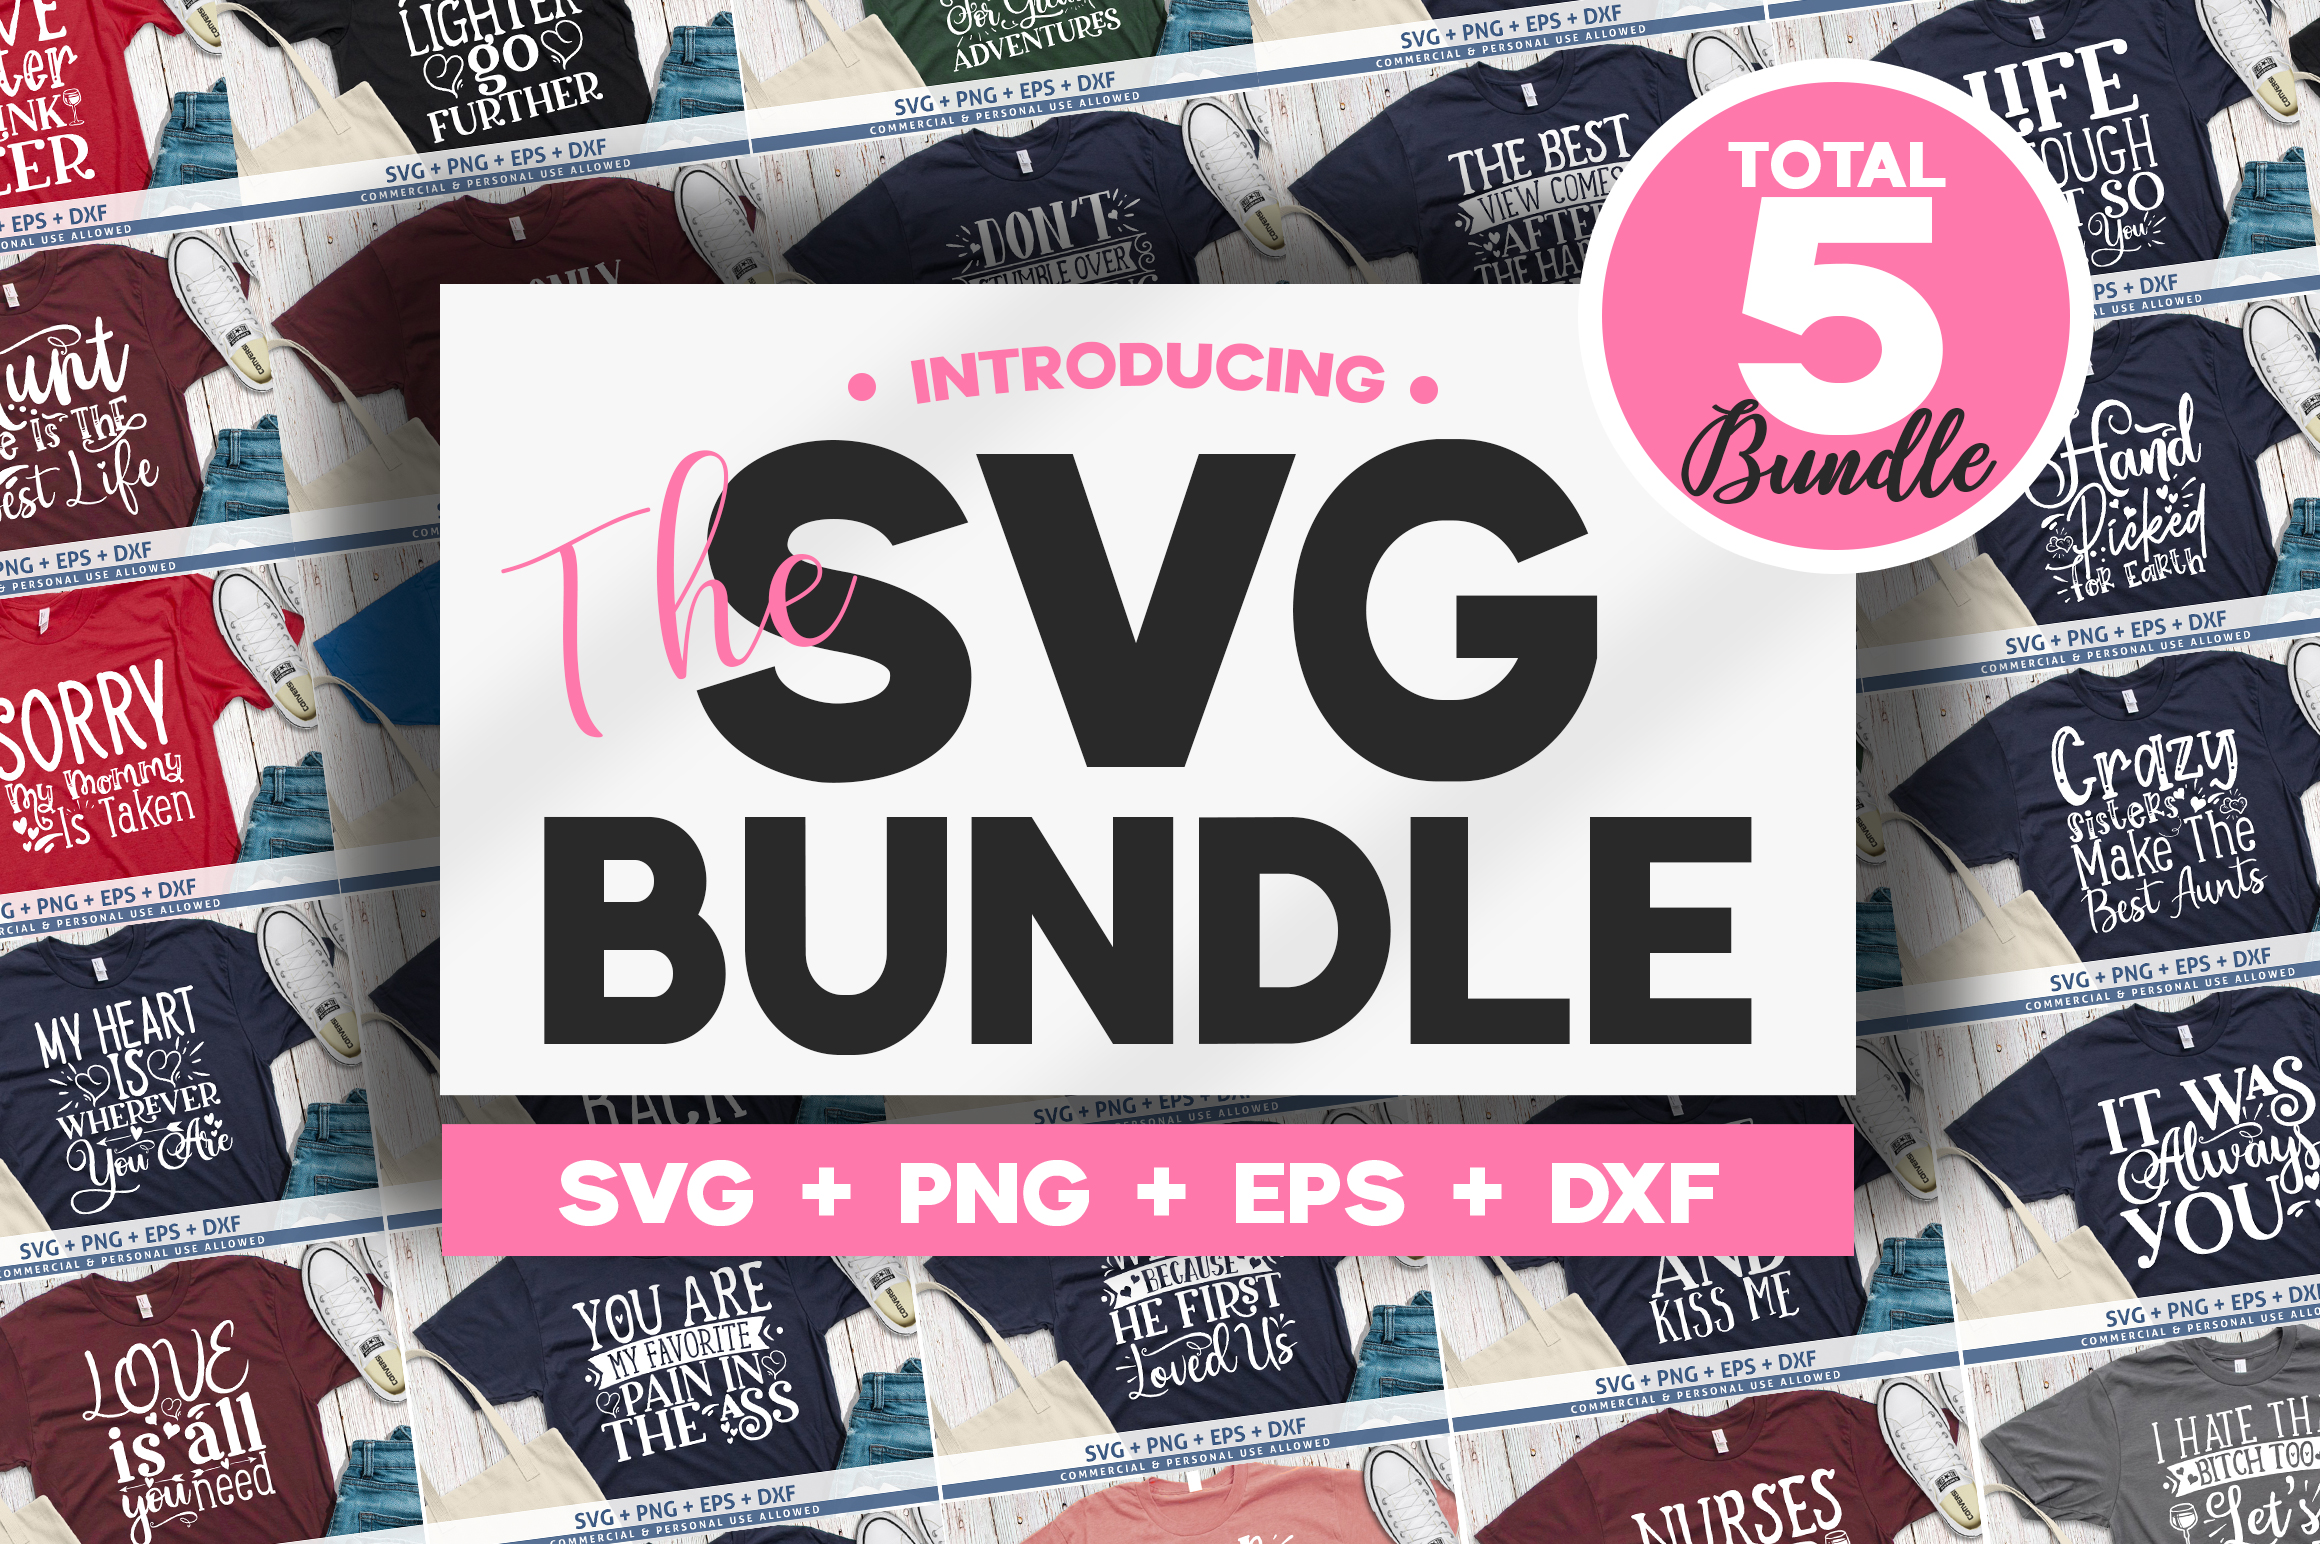 Download Free Design Big Bundle Graphic By Subornastudio Creative Fabrica for Cricut Explore, Silhouette and other cutting machines.